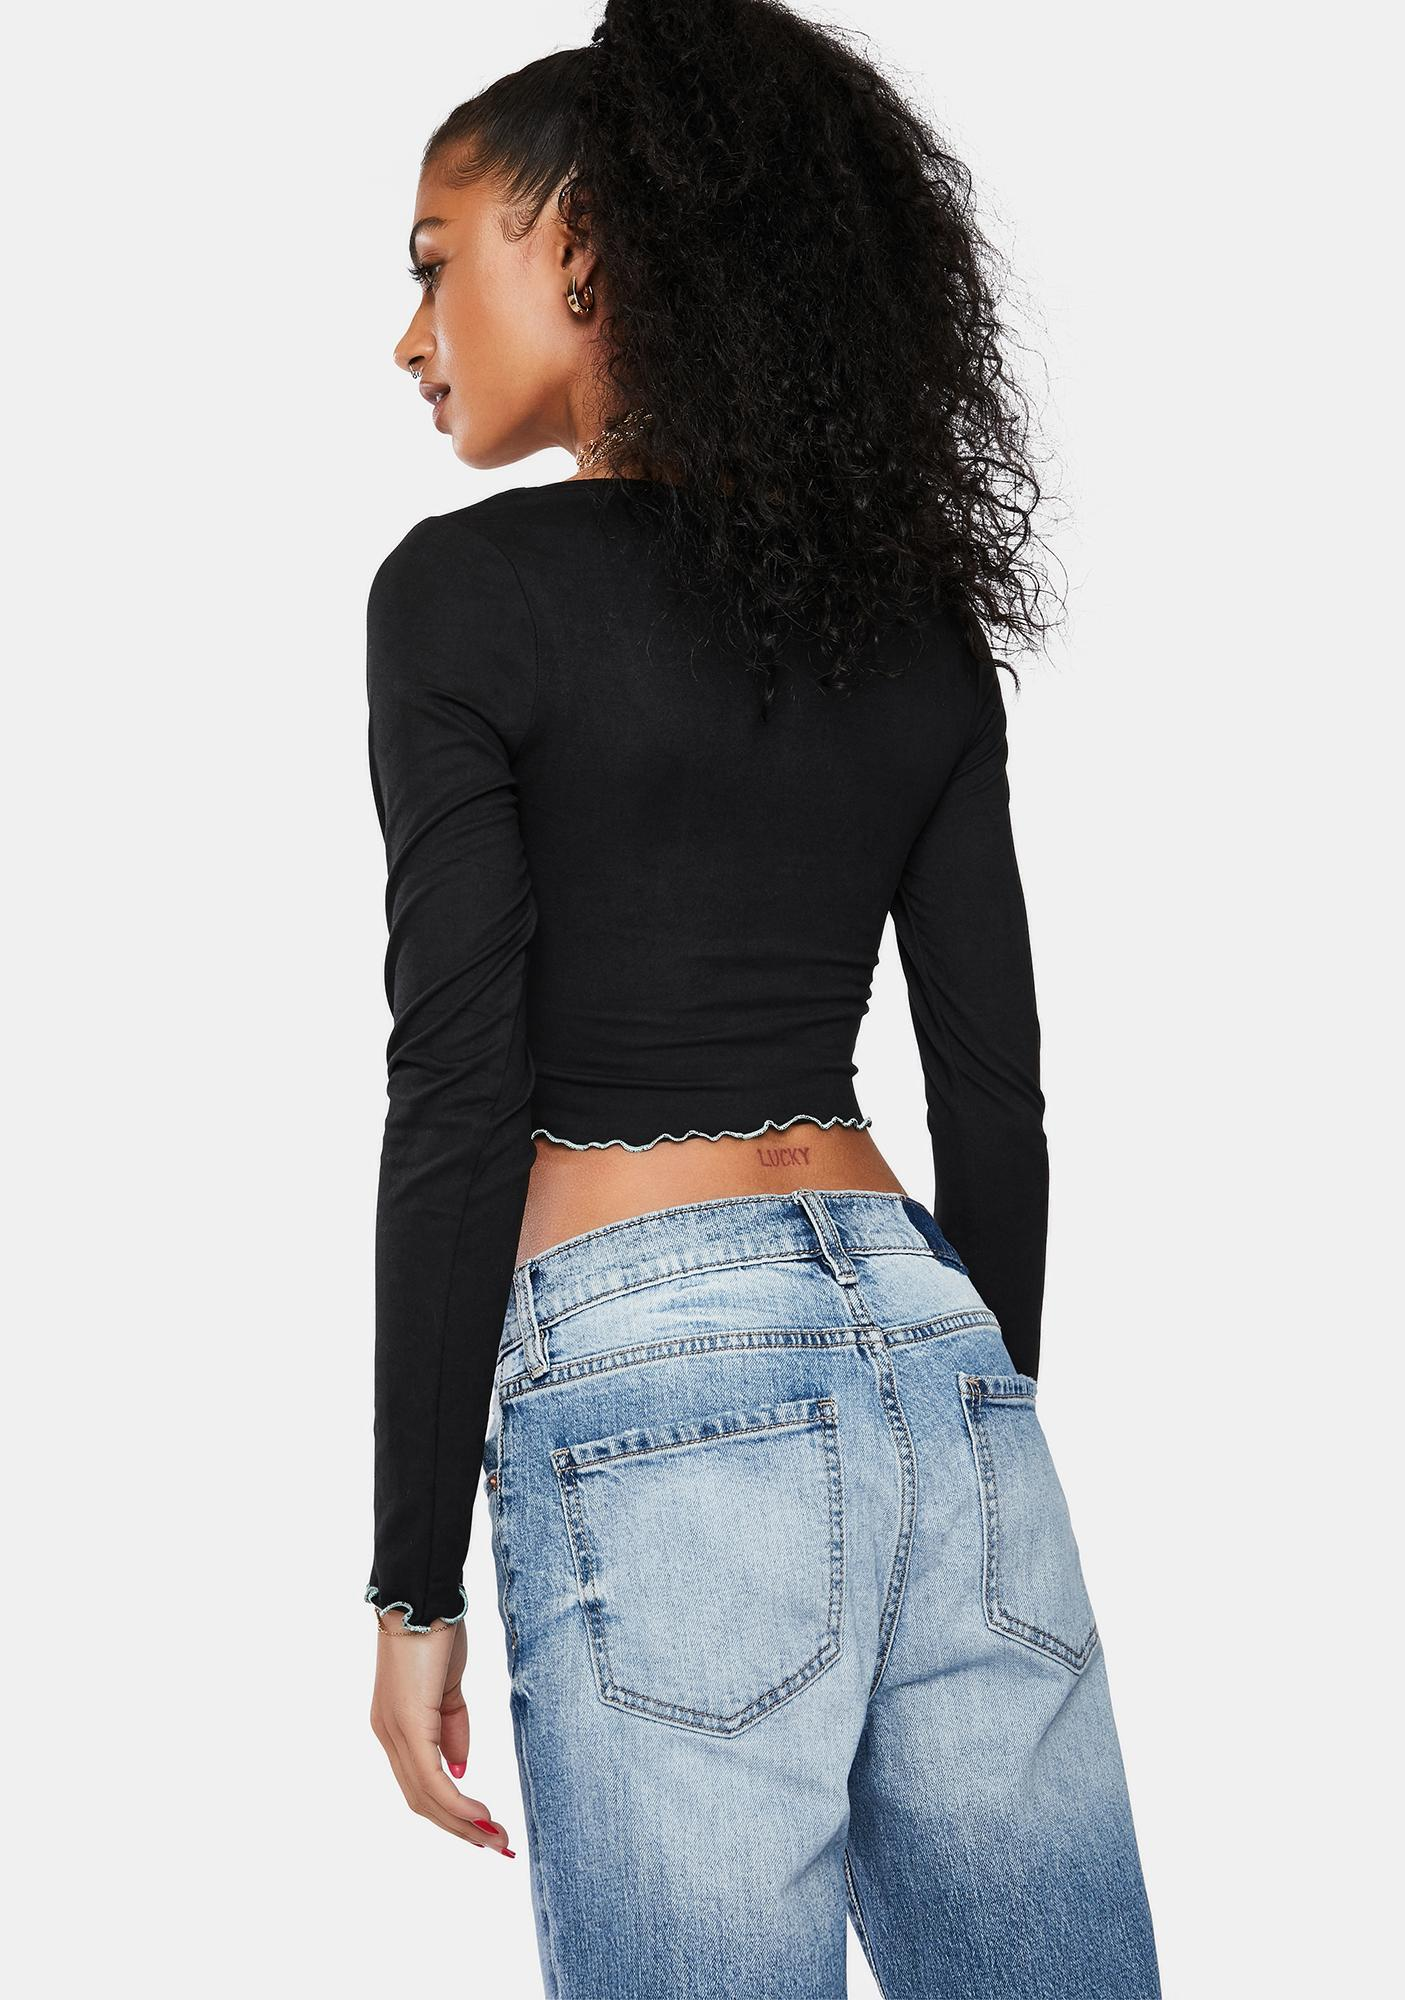 Late Yes No Maybe Long Sleeve Crop Top